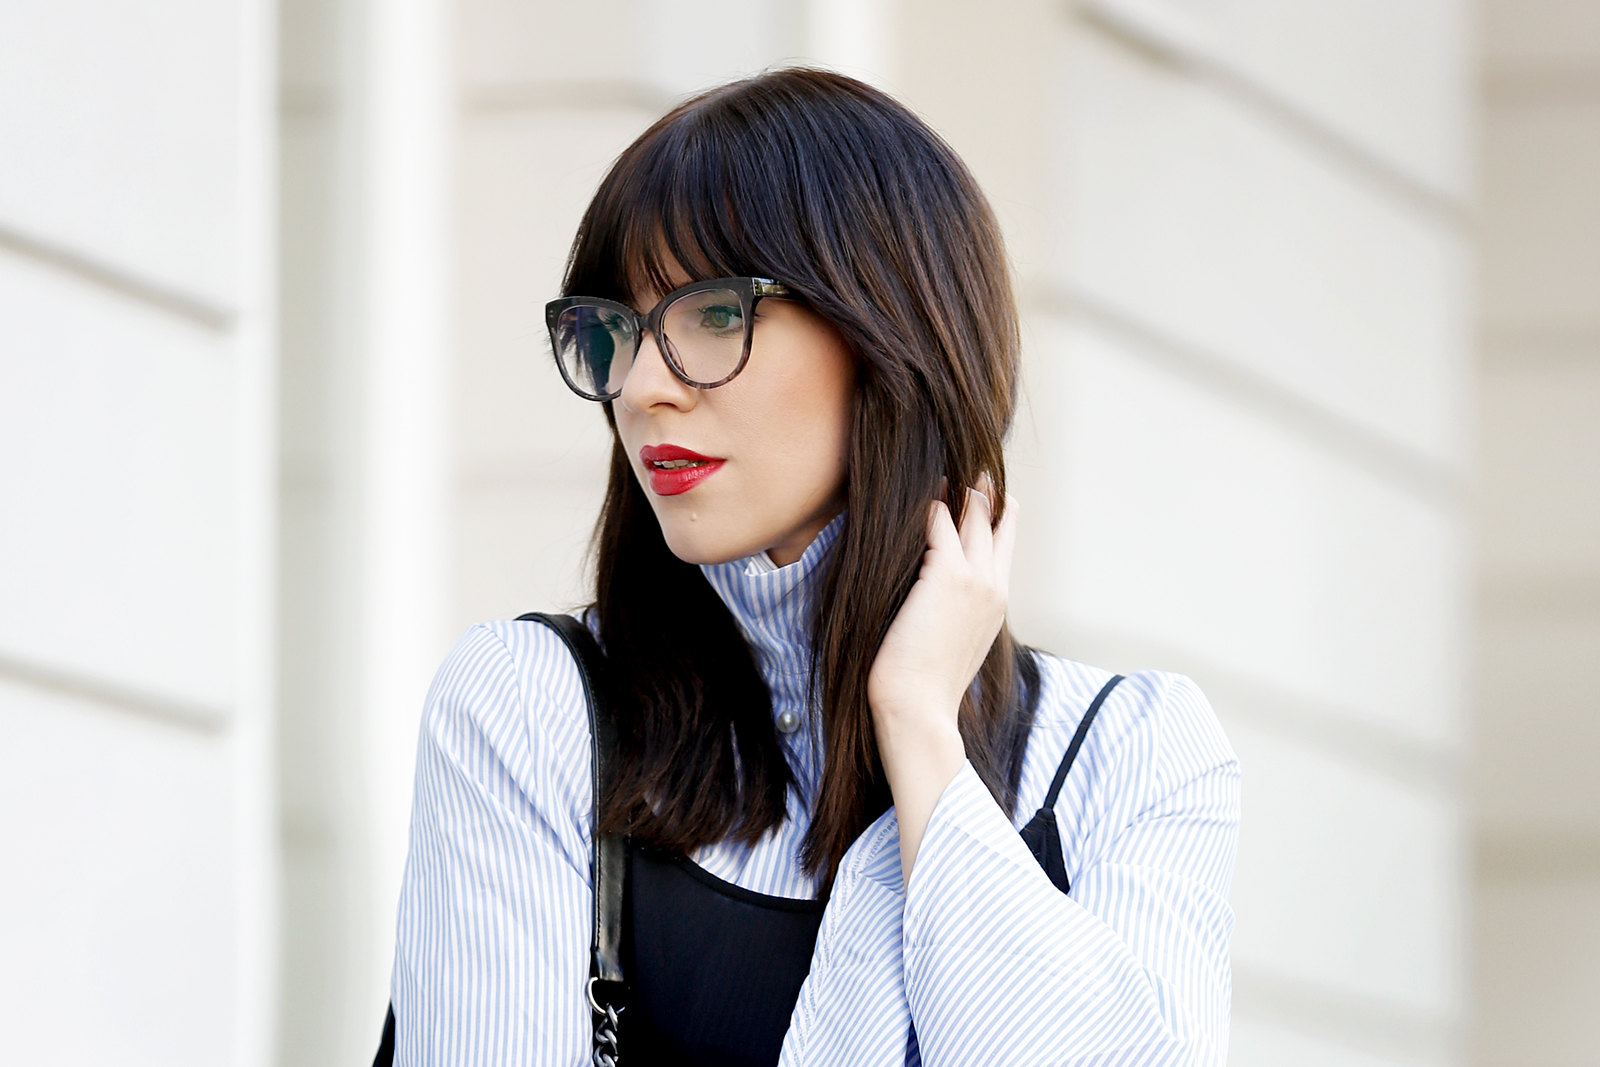 outfit slip dress wide sleeves stripes blogger for mister spex glasses brille brillenkollektion online shop design bangs brunette chanel boy sacha sneakers cats & dogs blog ricarda schernus modeblogger 2